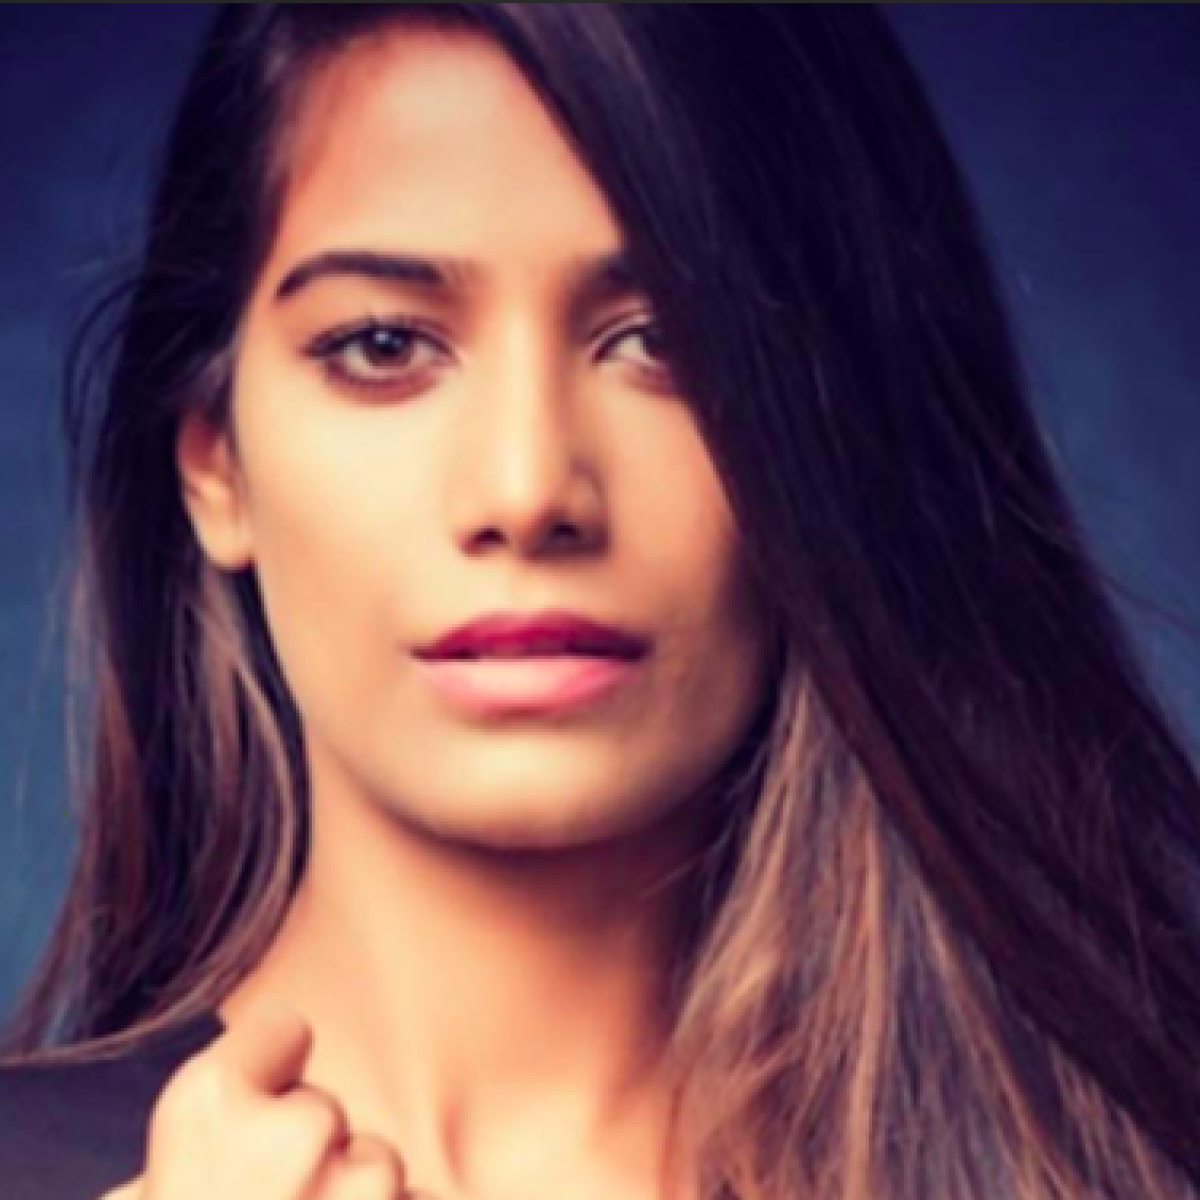 Lockdown 3.0 in Mumbai: Actress Poonam Pandey, friend go on joyride from Bandra to Marine Drive; held